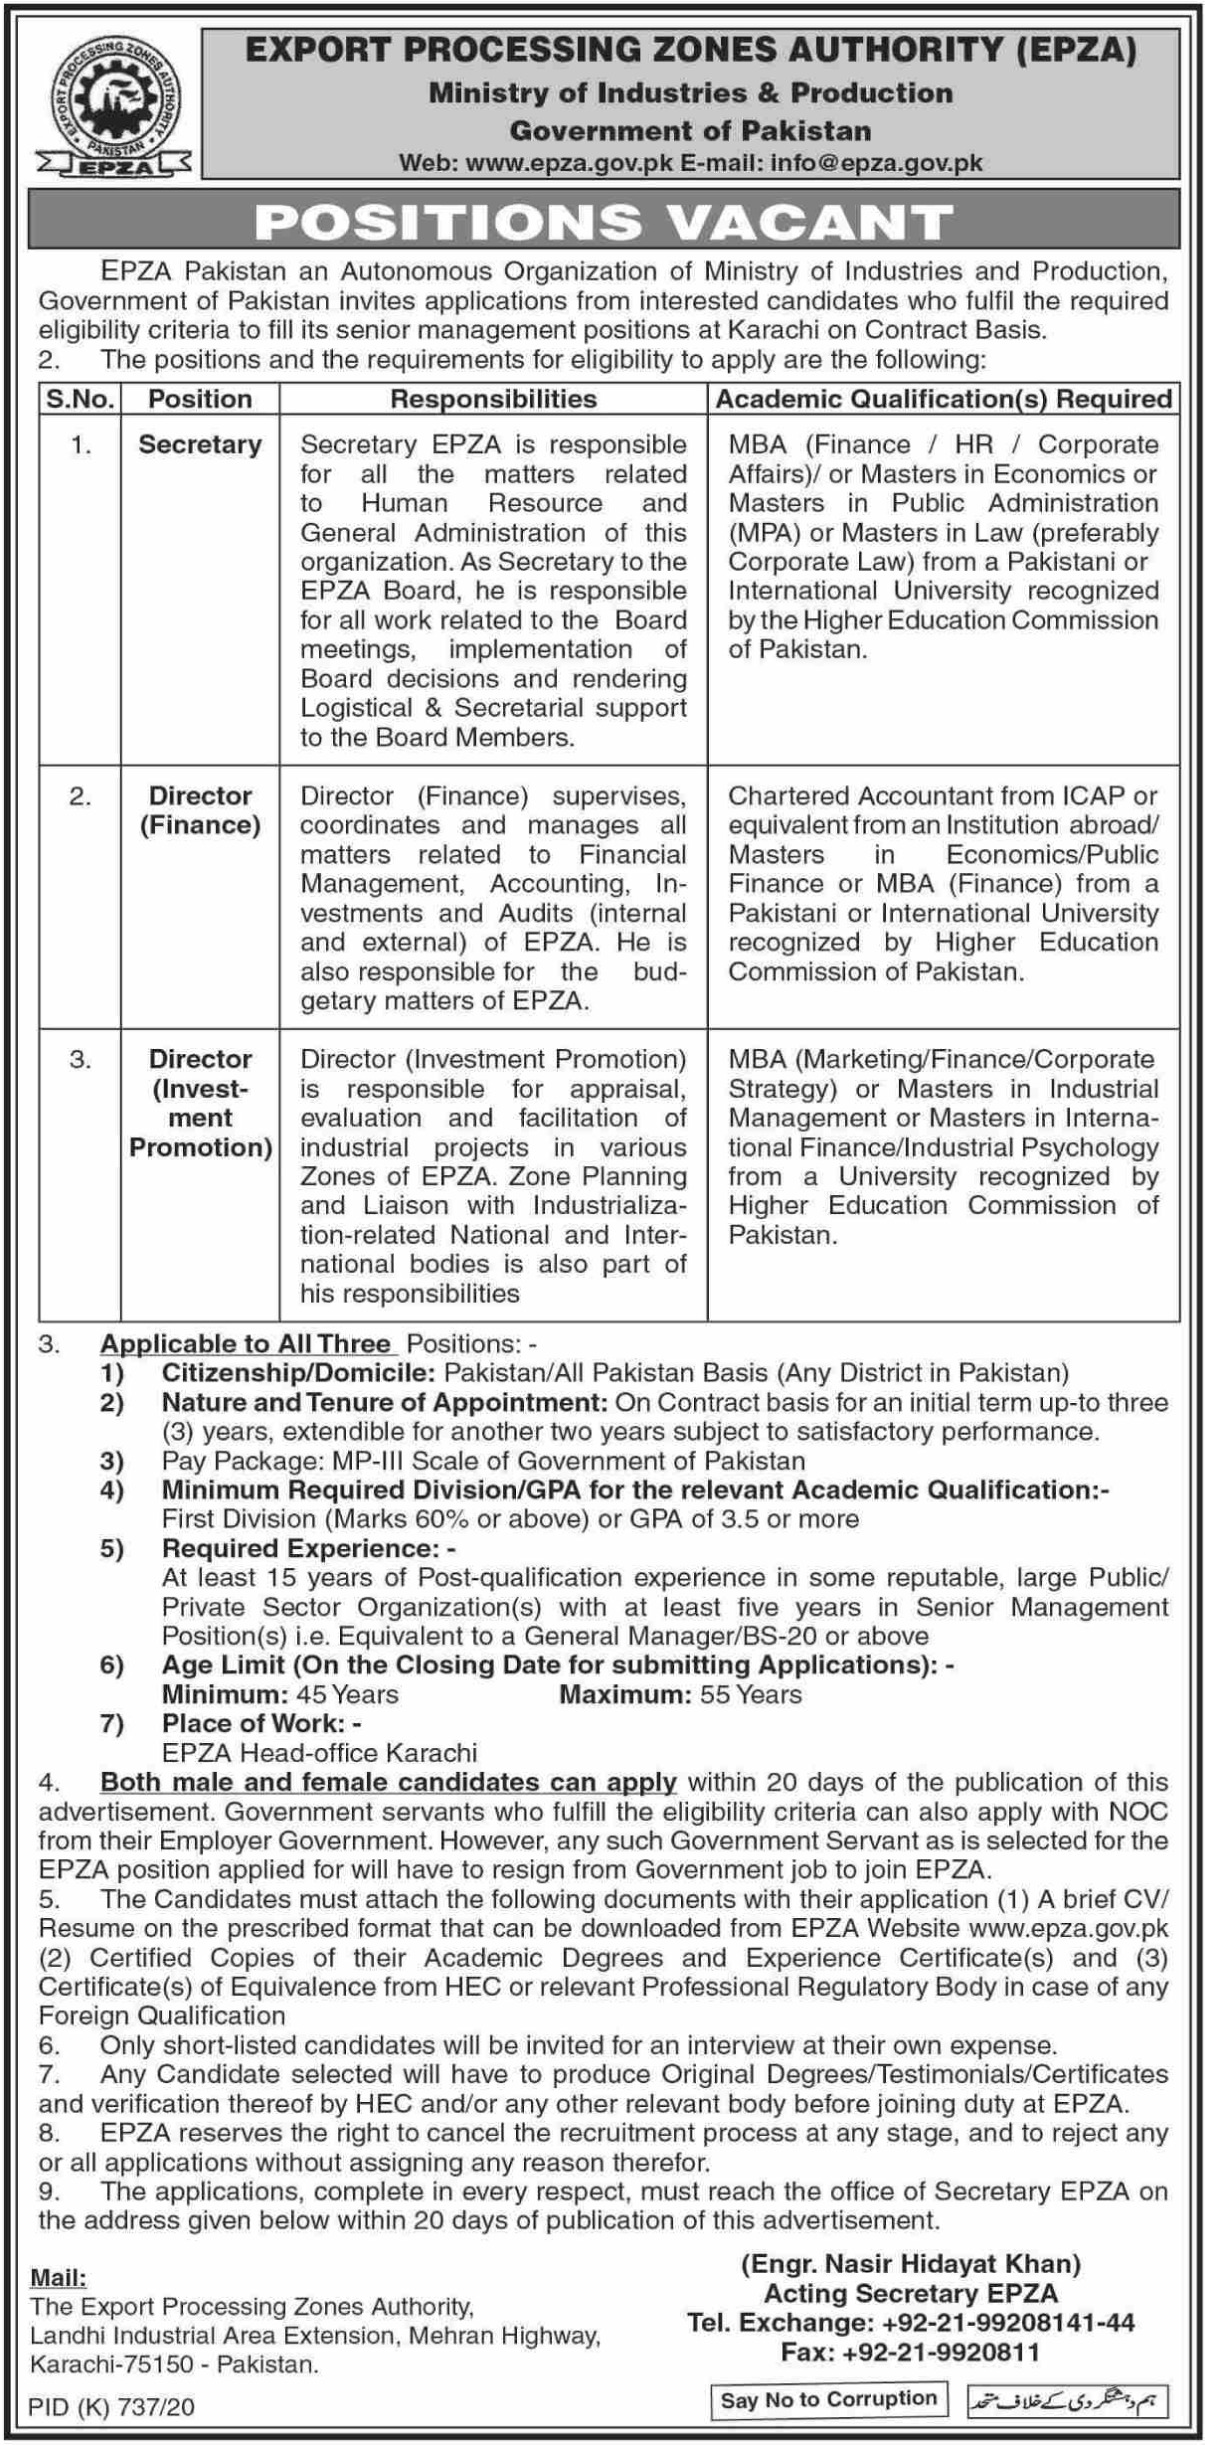 EPZA Ministry of Industries & Production Jobs September 2020